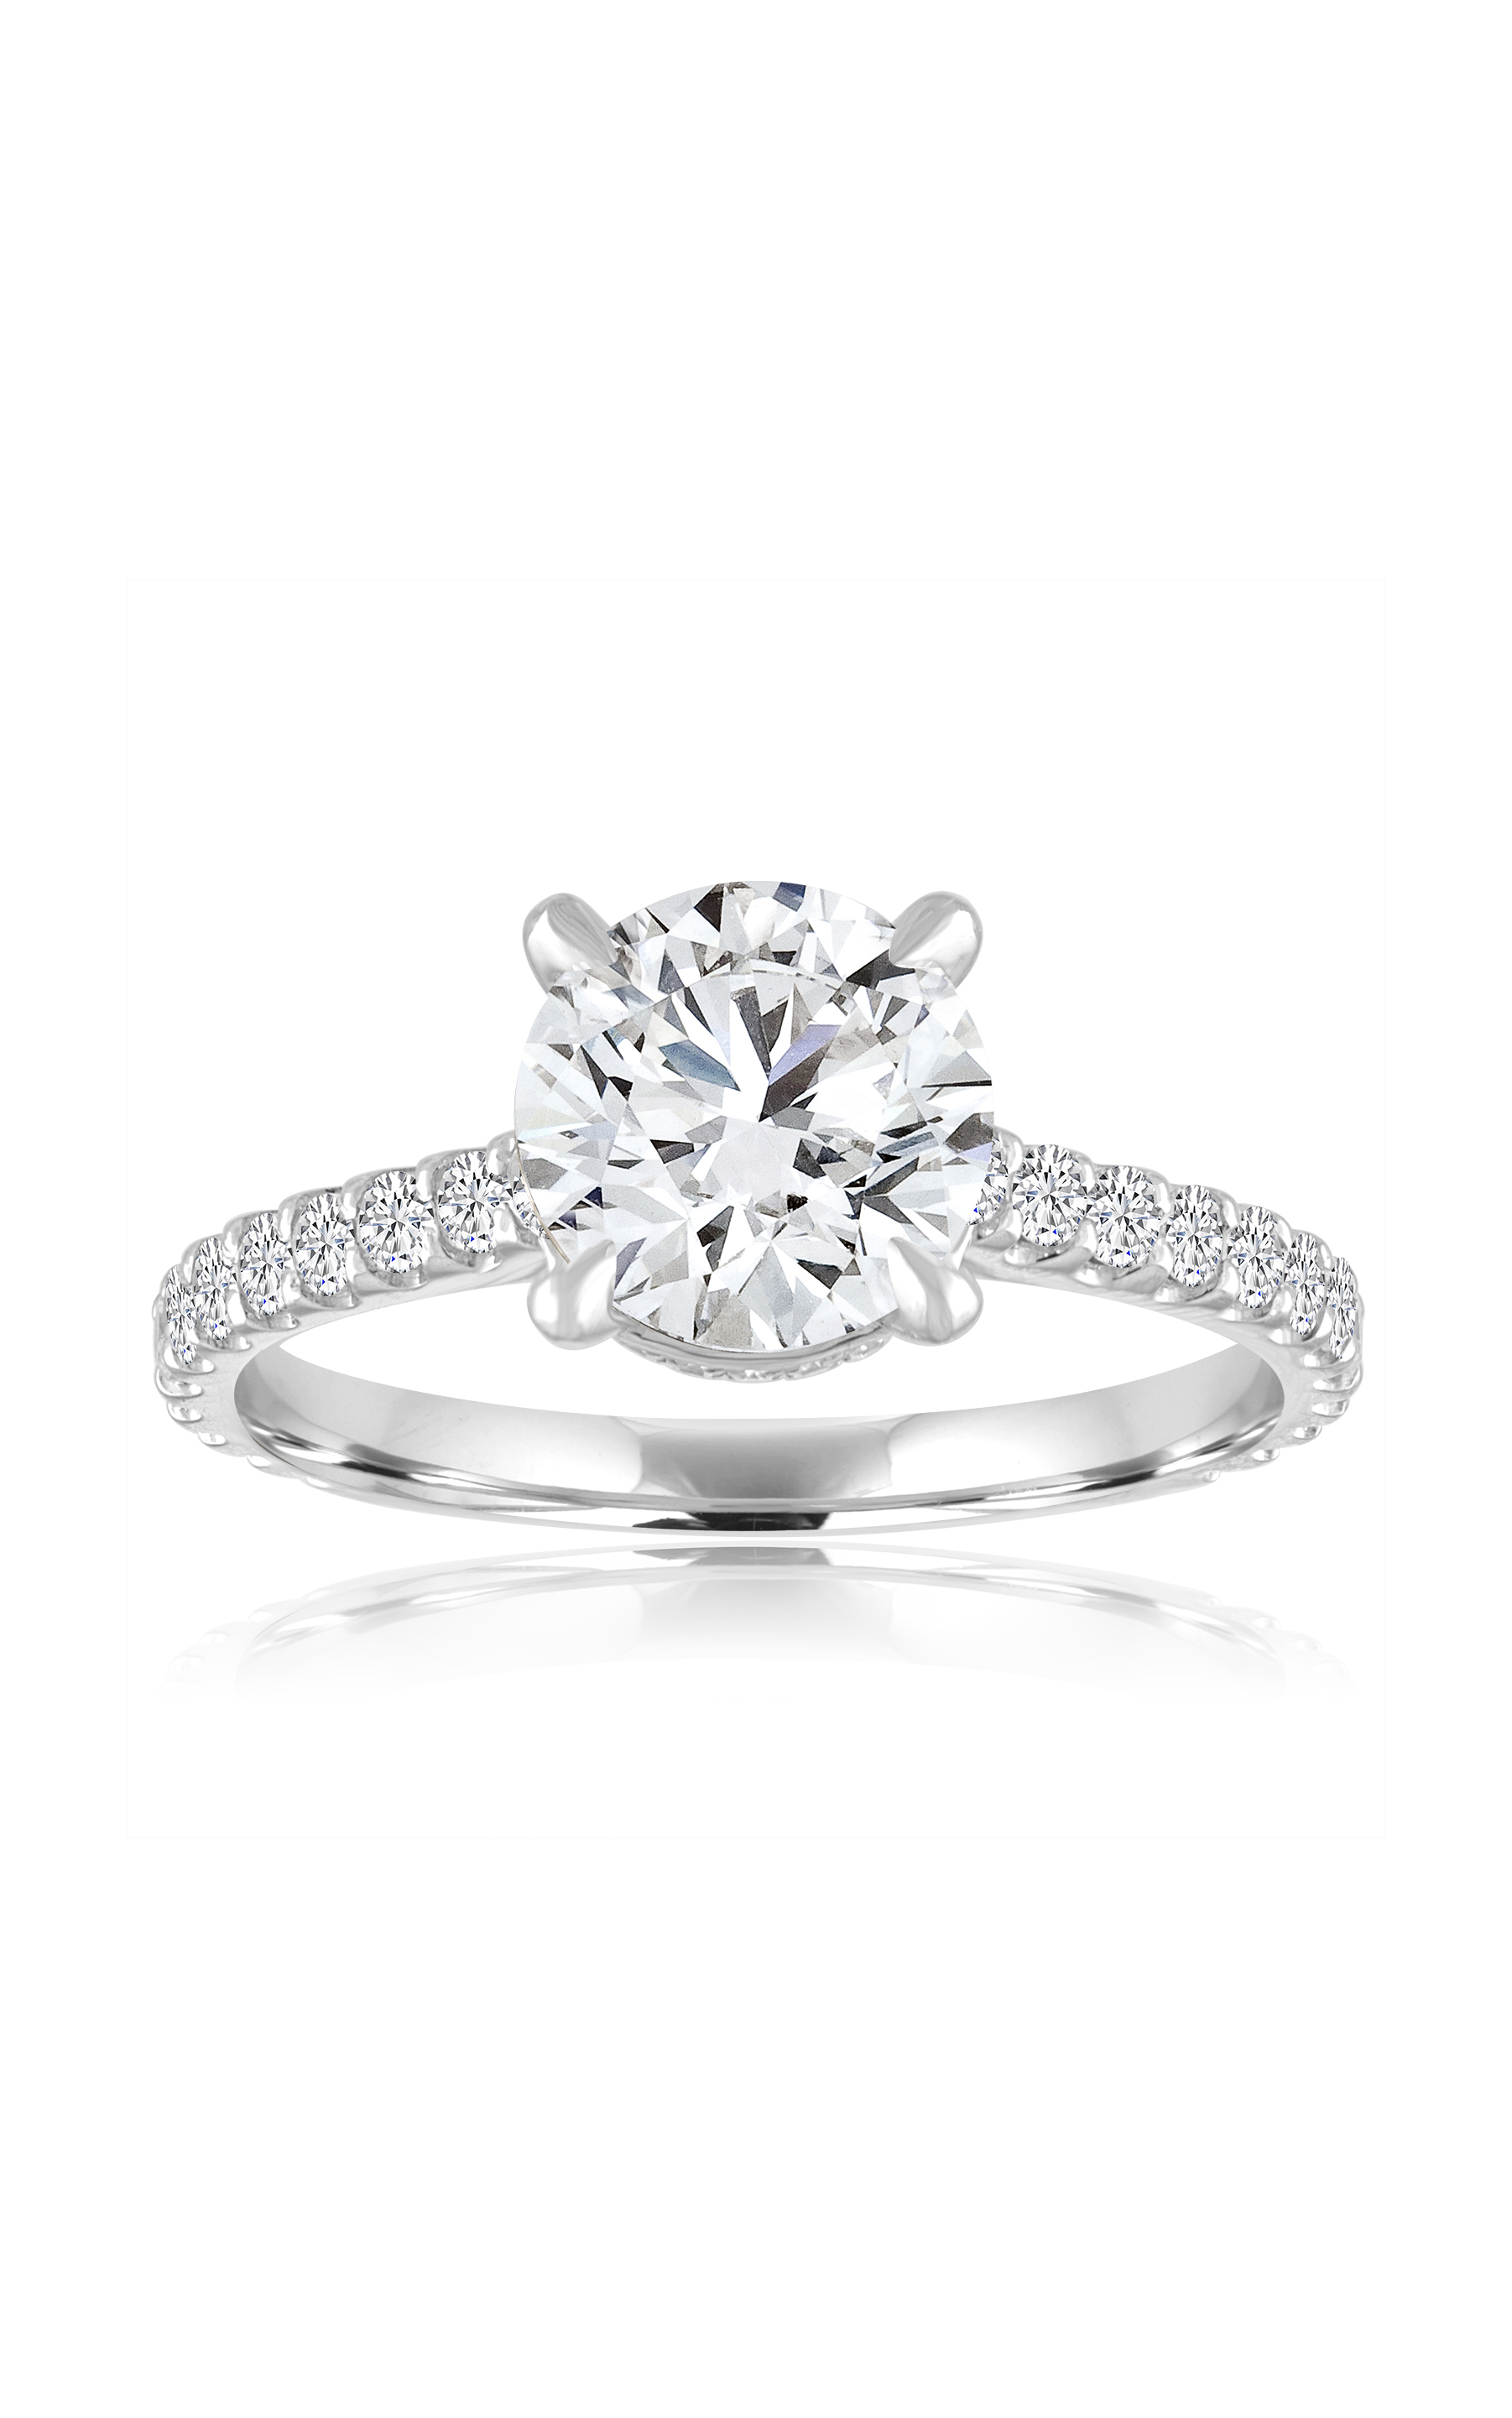 Imagine Bridal Engagement Rings 64486D-1 2 product image